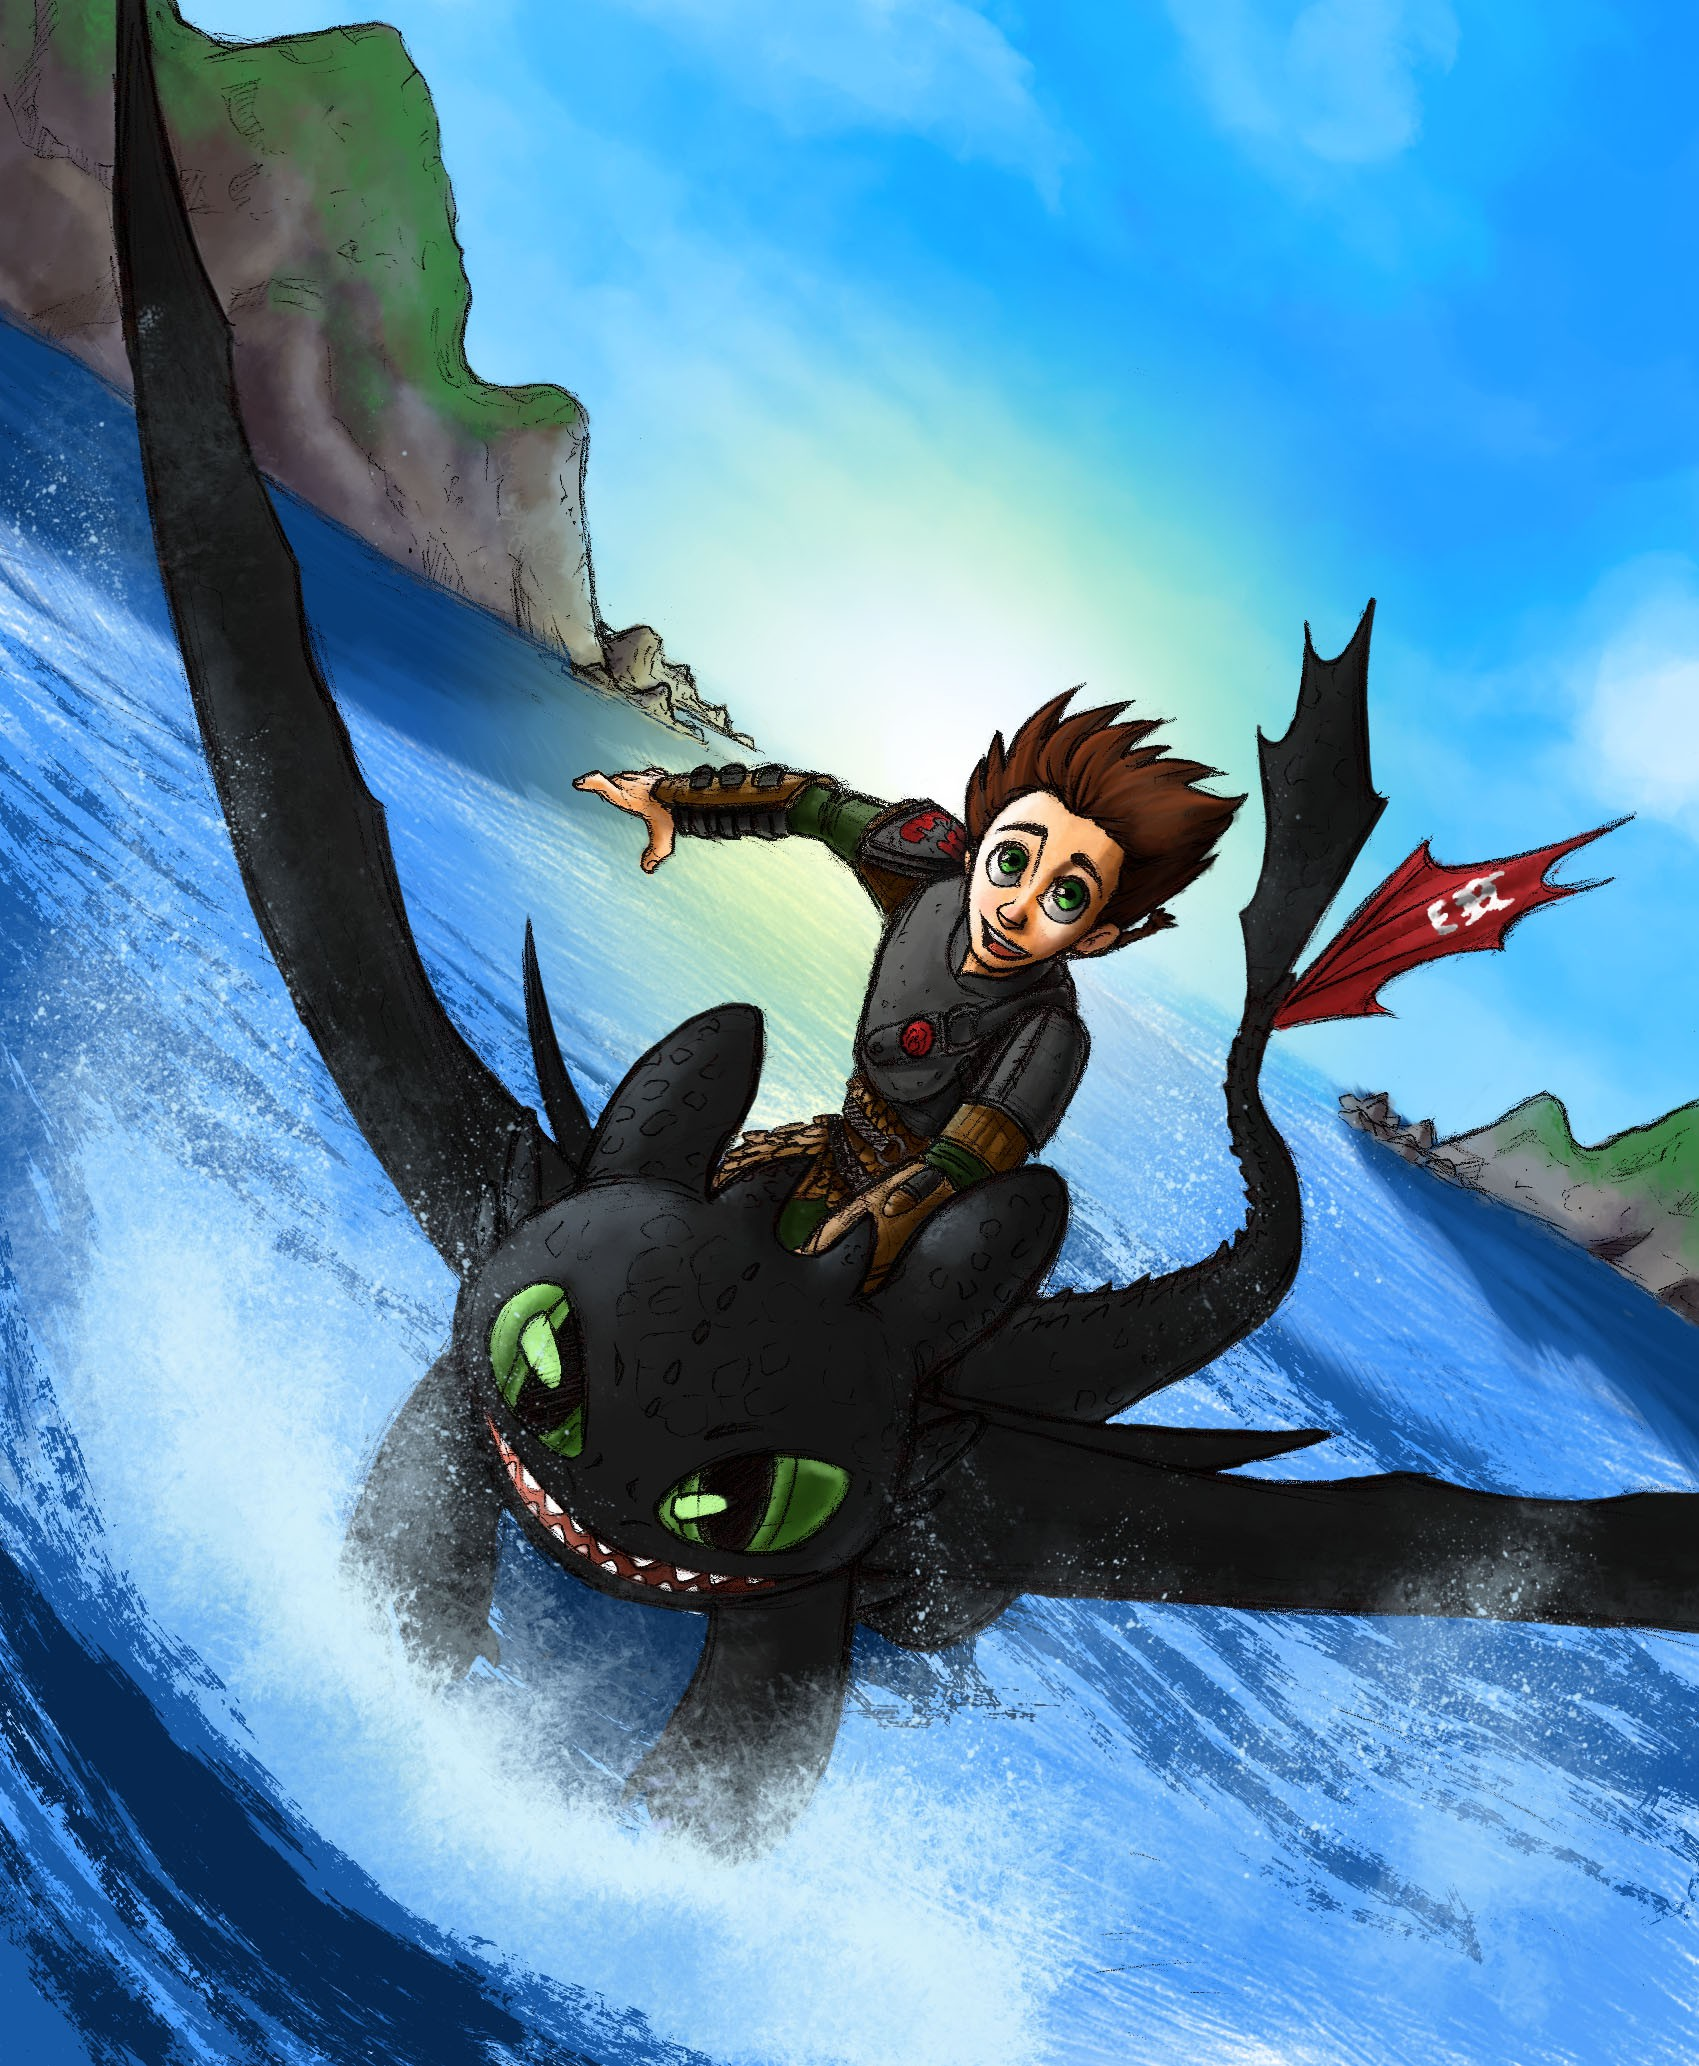 How to Train Your Dragon The Hidden World is an animated movie produced by DreamWorks Animation and the sequel to How to Train Your Dragon 2 It is the third and